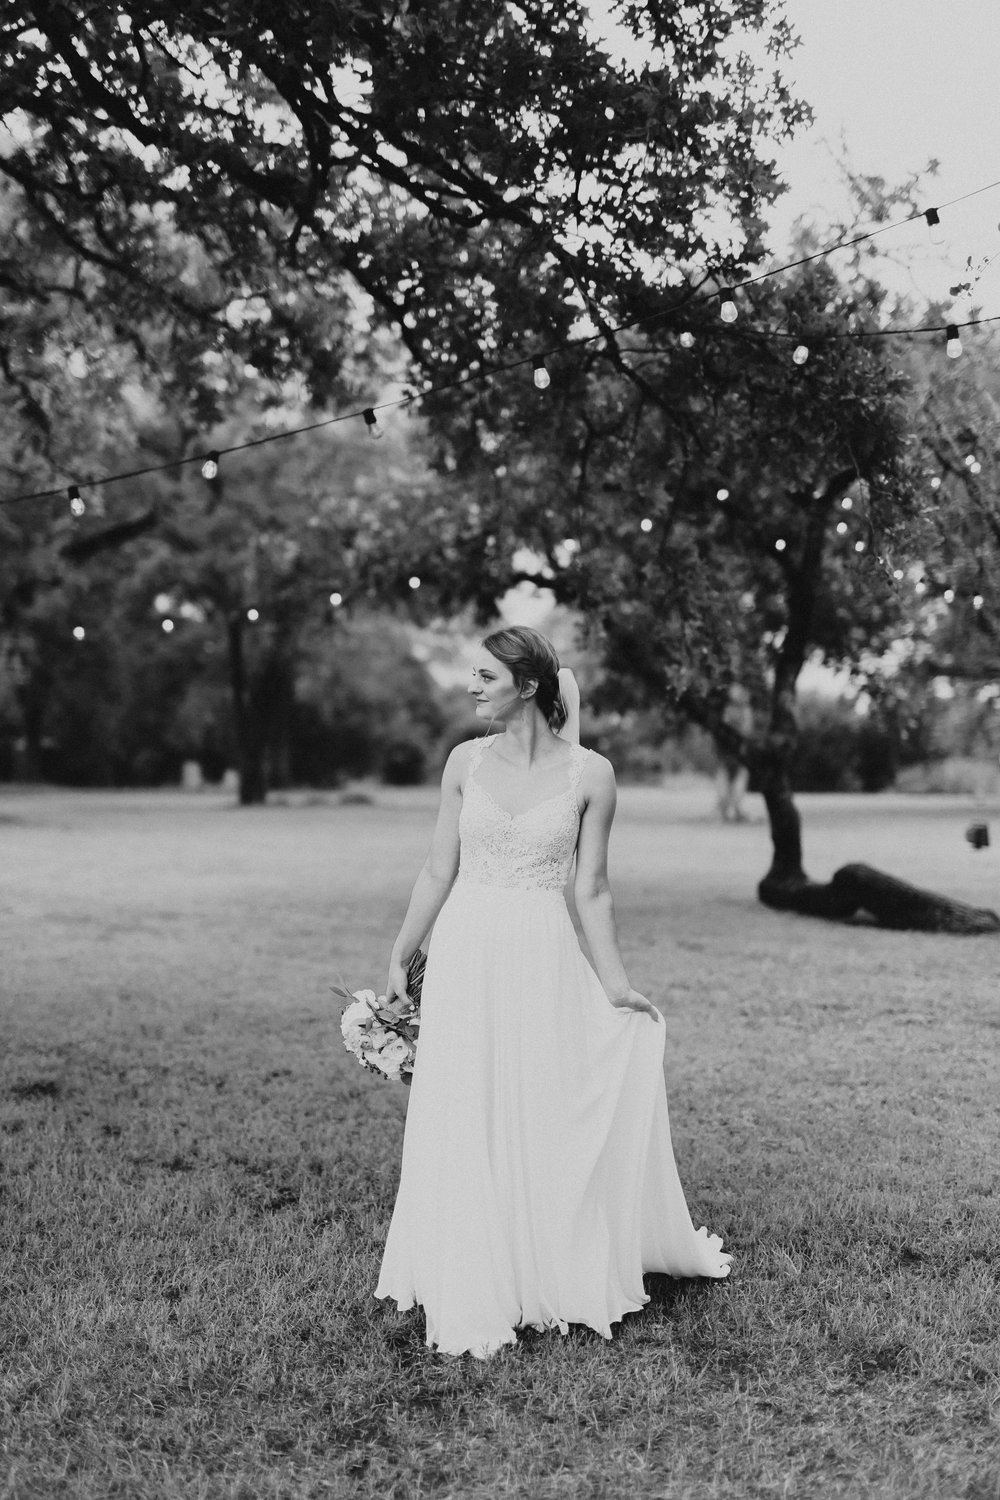 HAILEY-TIM-wedding-photographer-kindred-oaks-texas-317-1.jpg